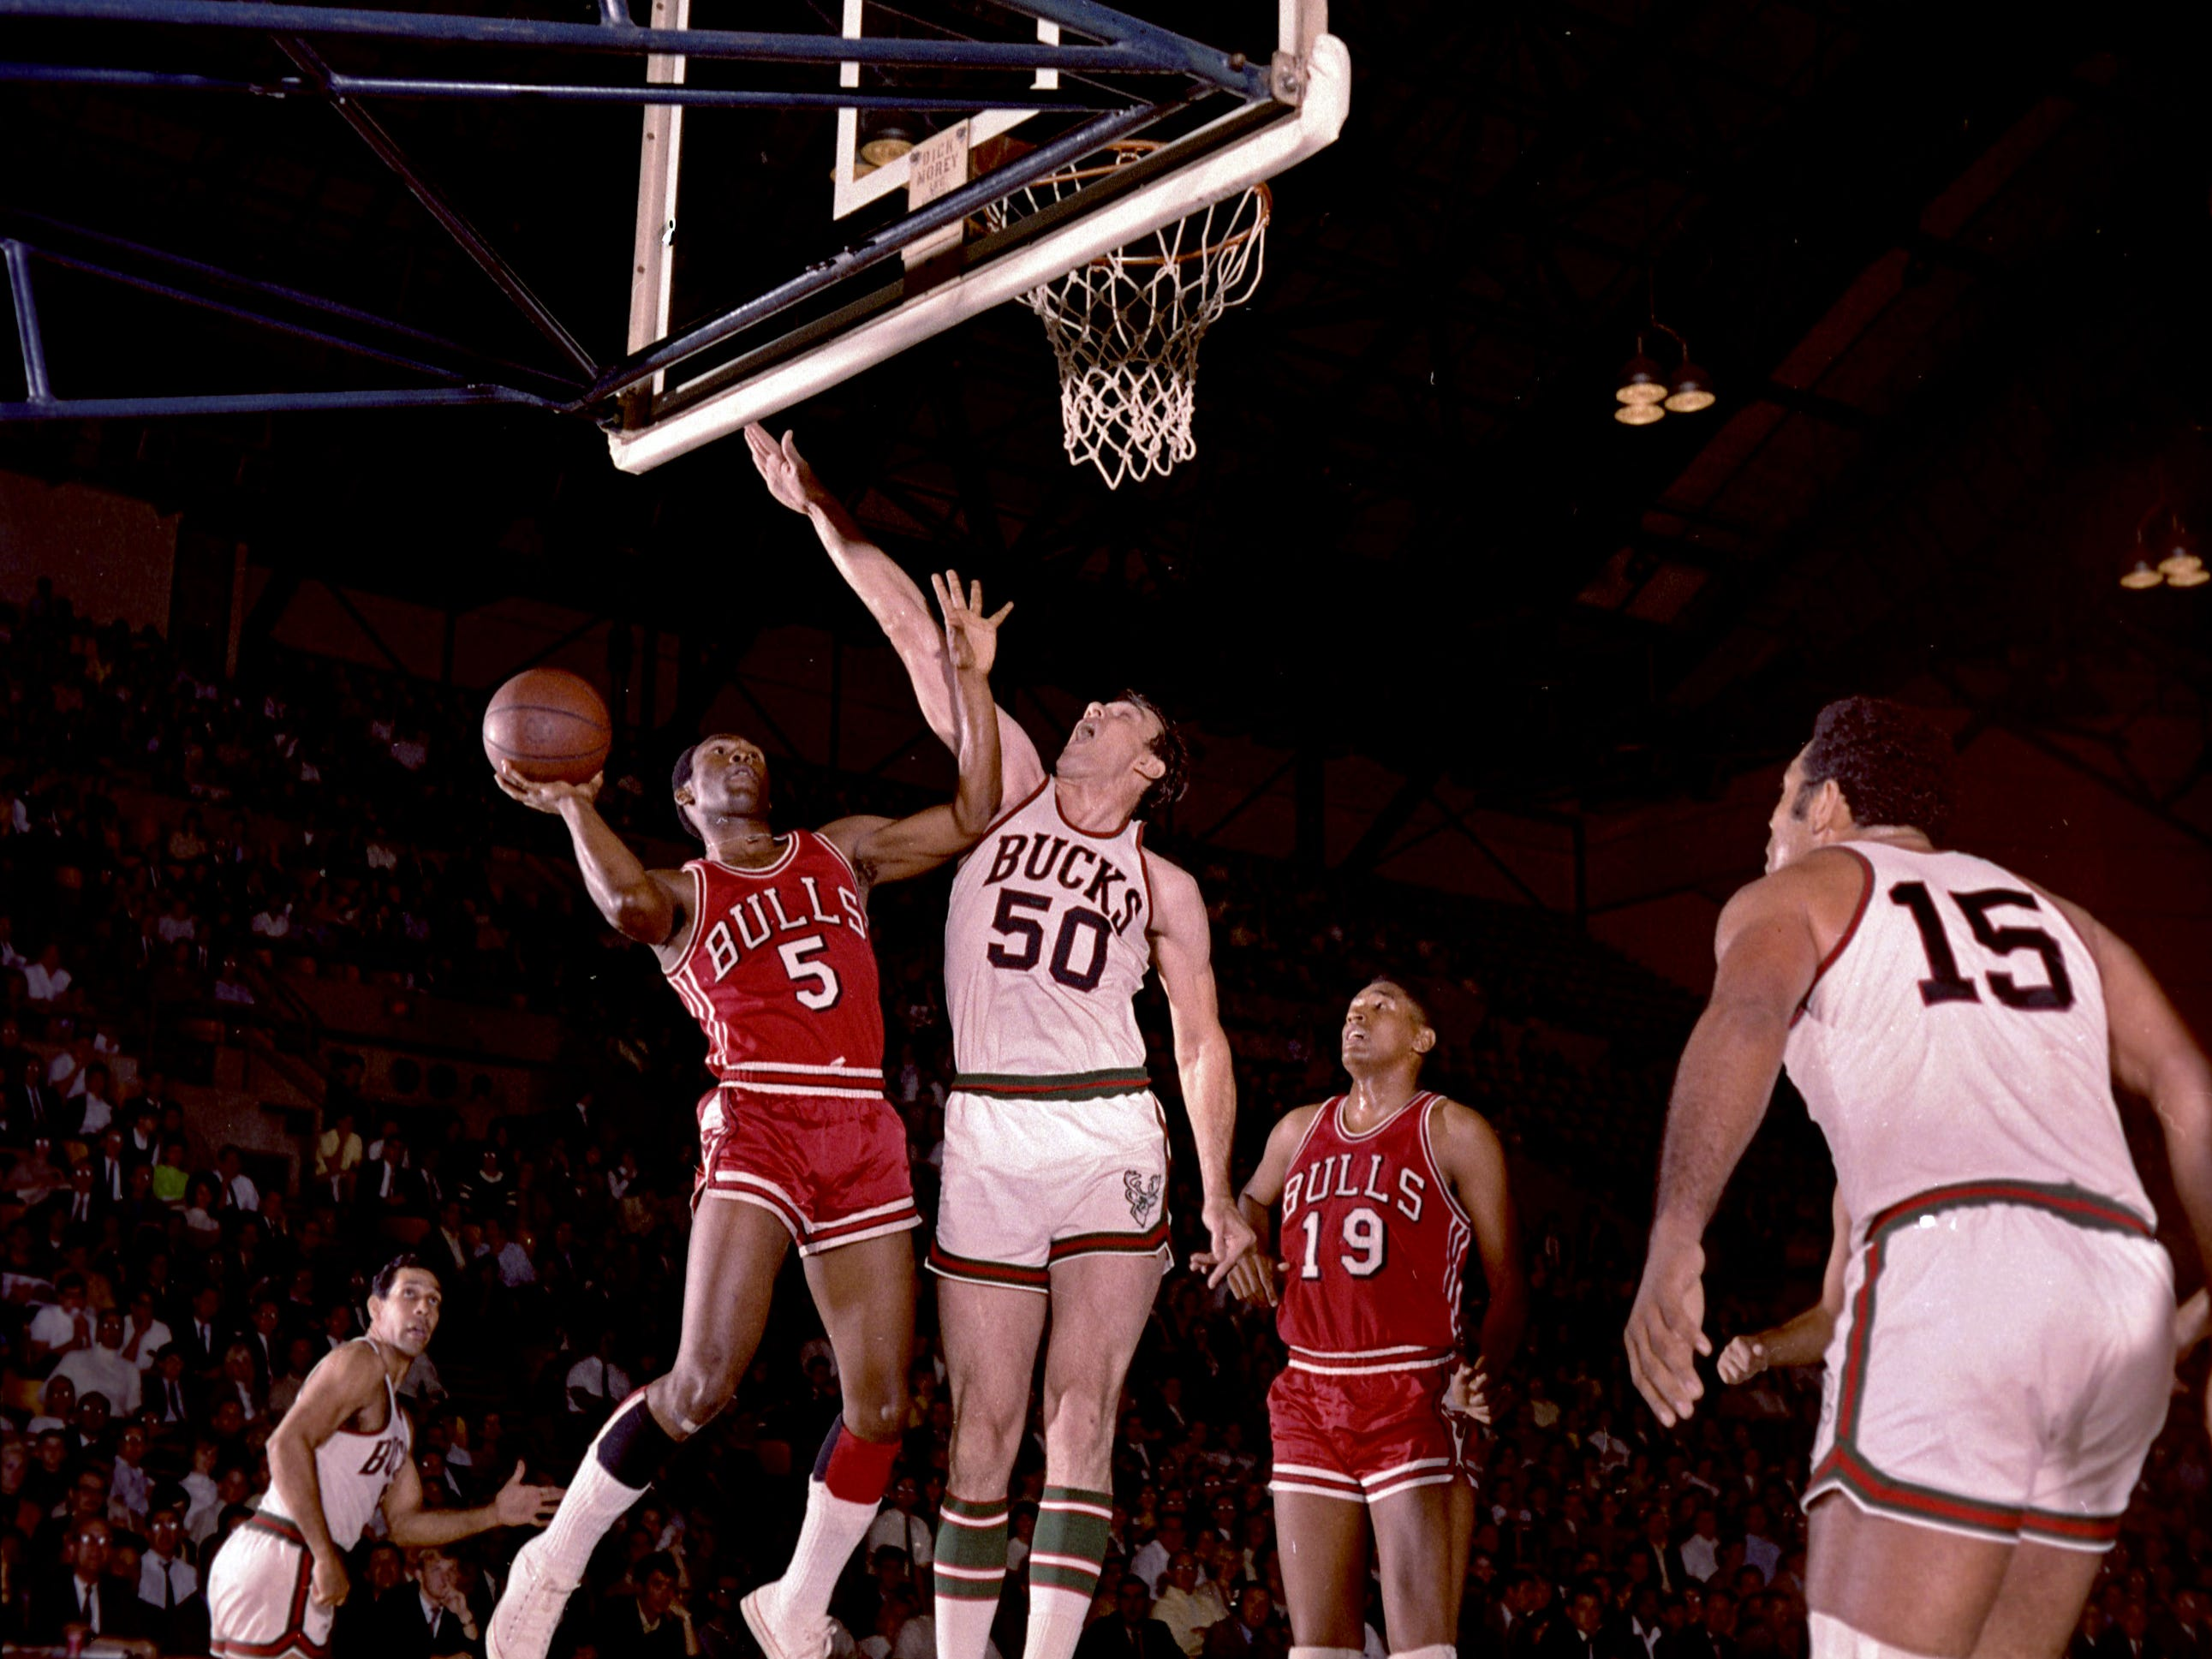 Chicago Bulls guard Flynn Robinson (5) tries to shoot over Milwaukee Bucks forward Len Chappell (50) during the Bucks' first regular-season game in the NBA on Oct. 16, 1968, at the Milwaukee Arena. Players looking on include Bucks center Wayne Embry (15, right) and Bulls forward Bob Boozer. The Bucks lost, 89-84.